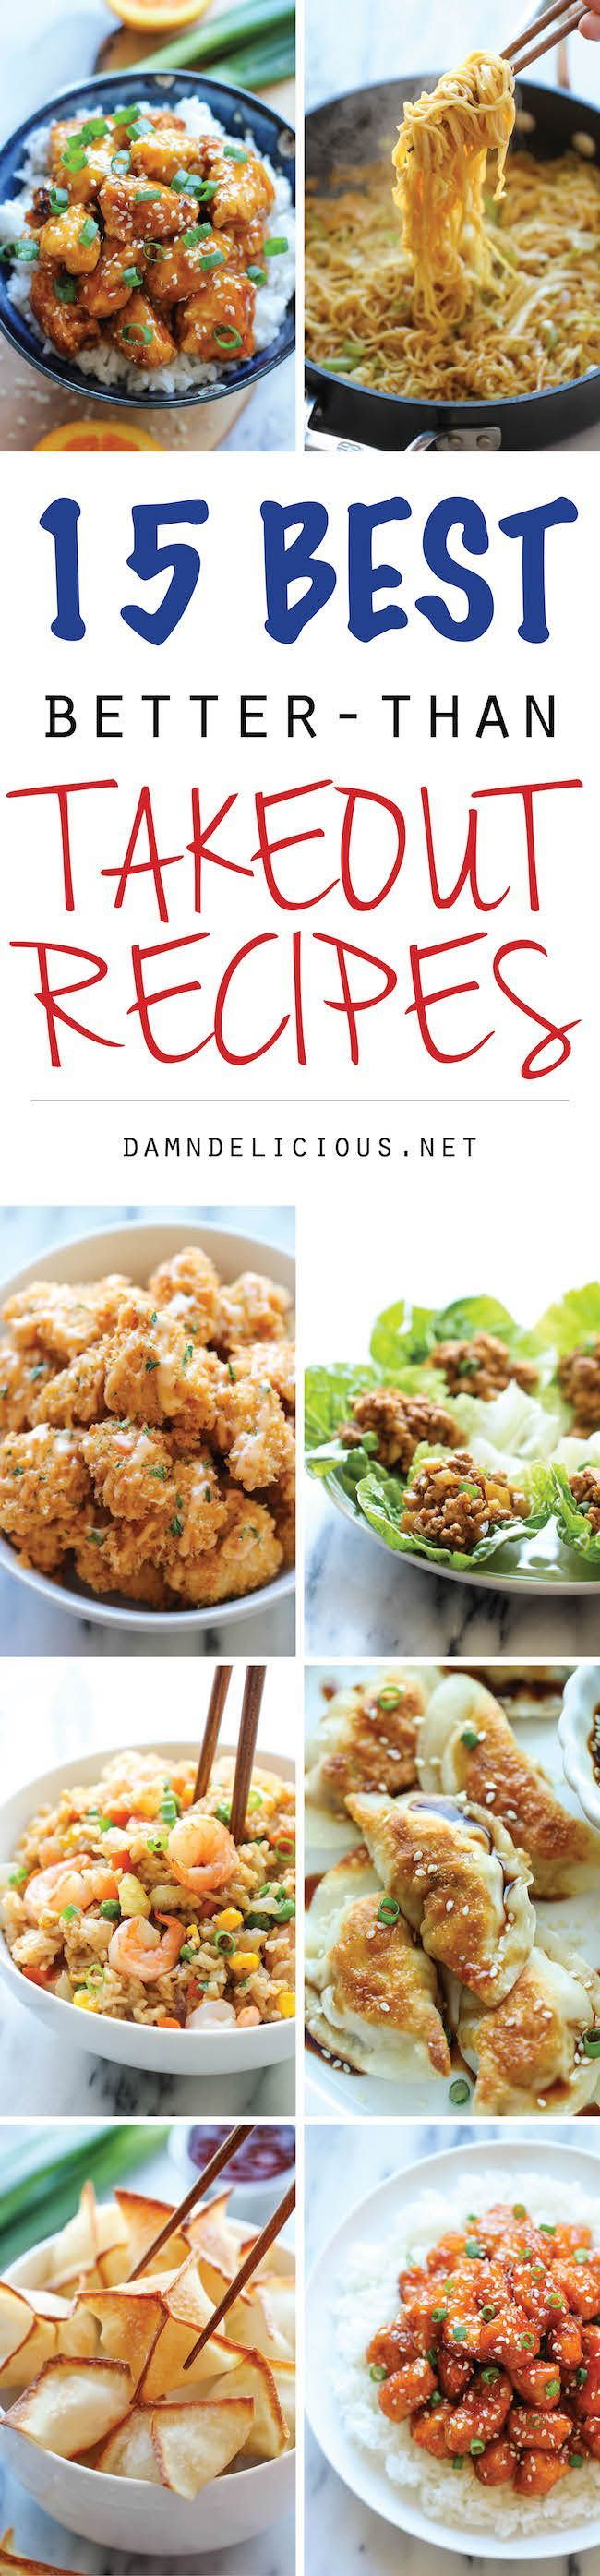 15 Best Better-Than Takeout Recipes - The best, budget-friendly takeout recipes you can easily make right at home. So easy, these dishes are practically fool-proof!